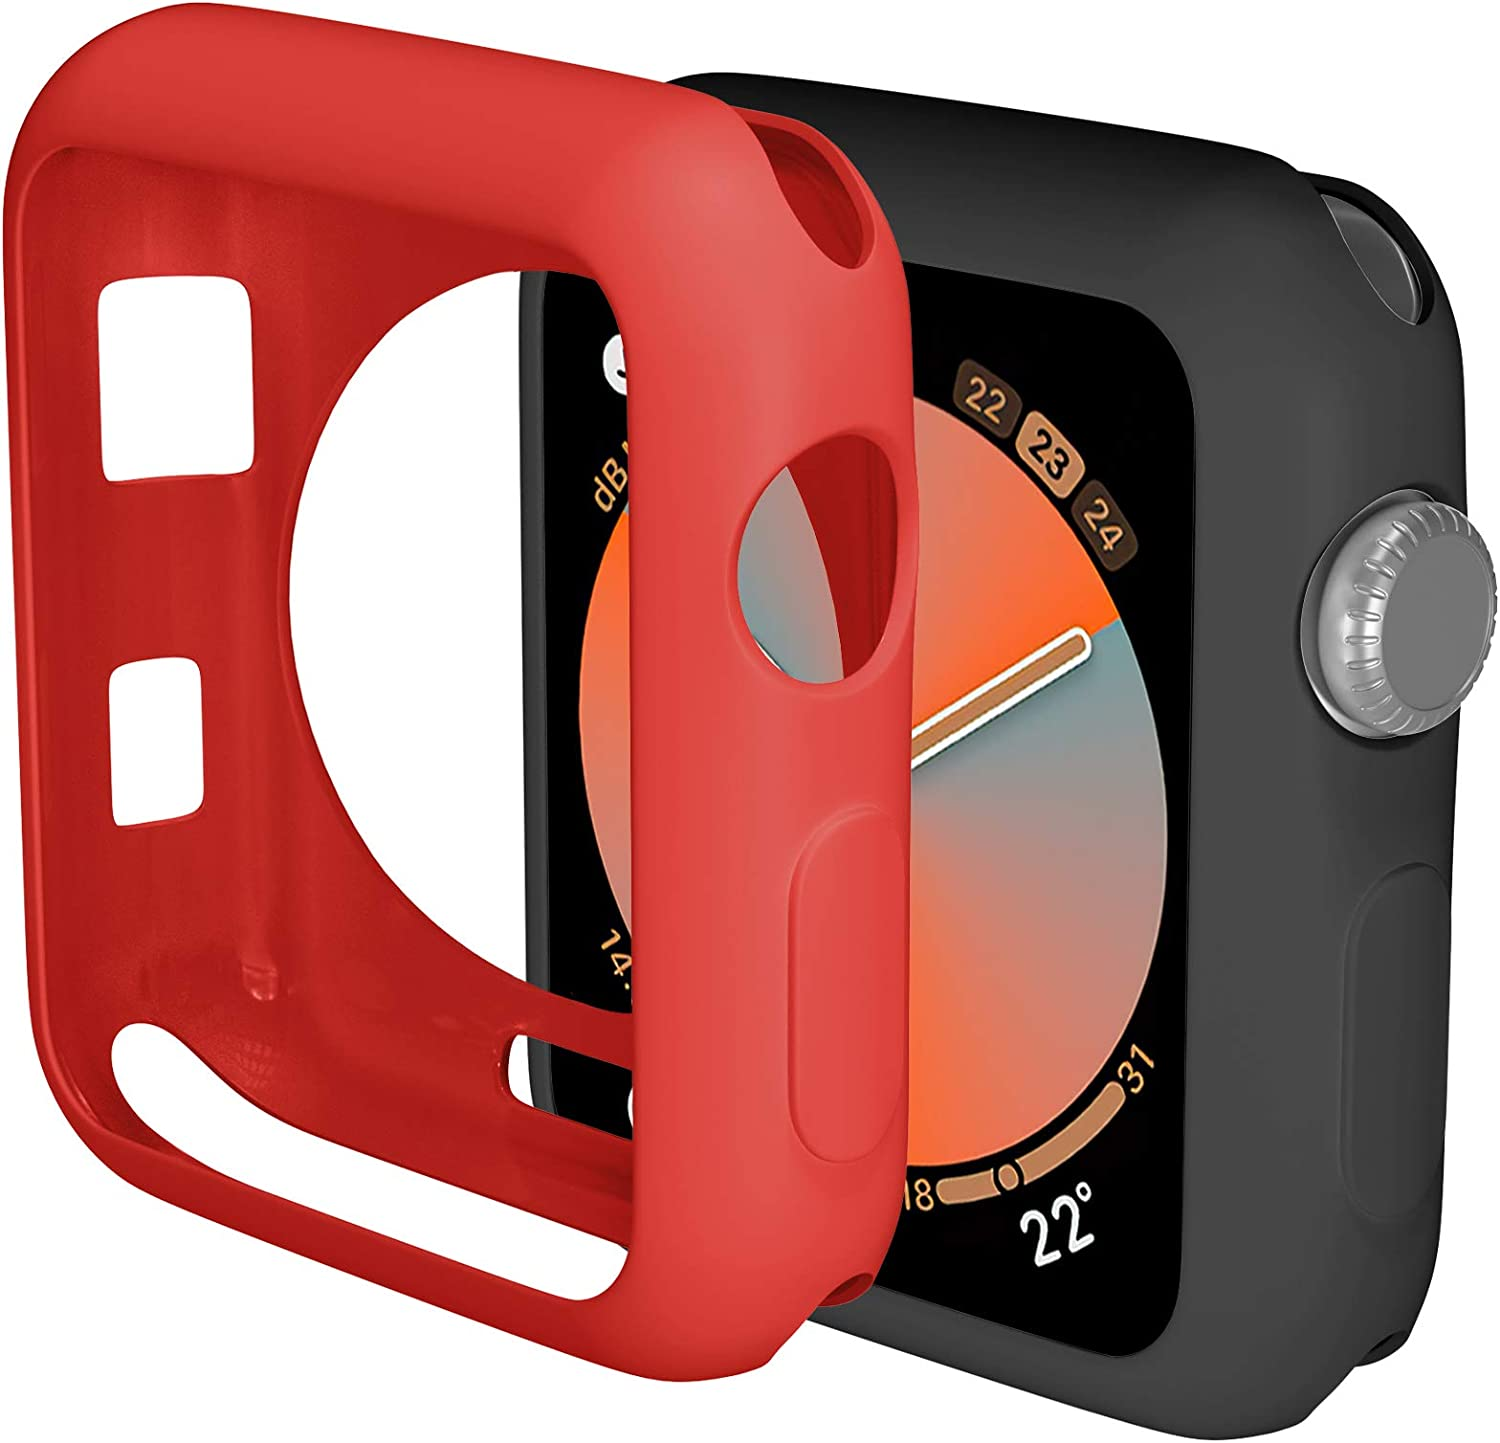 ZAROTO 44mm Case Compatible for Apple Watch Series 6 5 4, 2pack Screen Protector for Apple Watch SE, 44mm iwatch Bumper Protective Cover Soft Flexible TPU Lightweight Women Men (Black/Red)